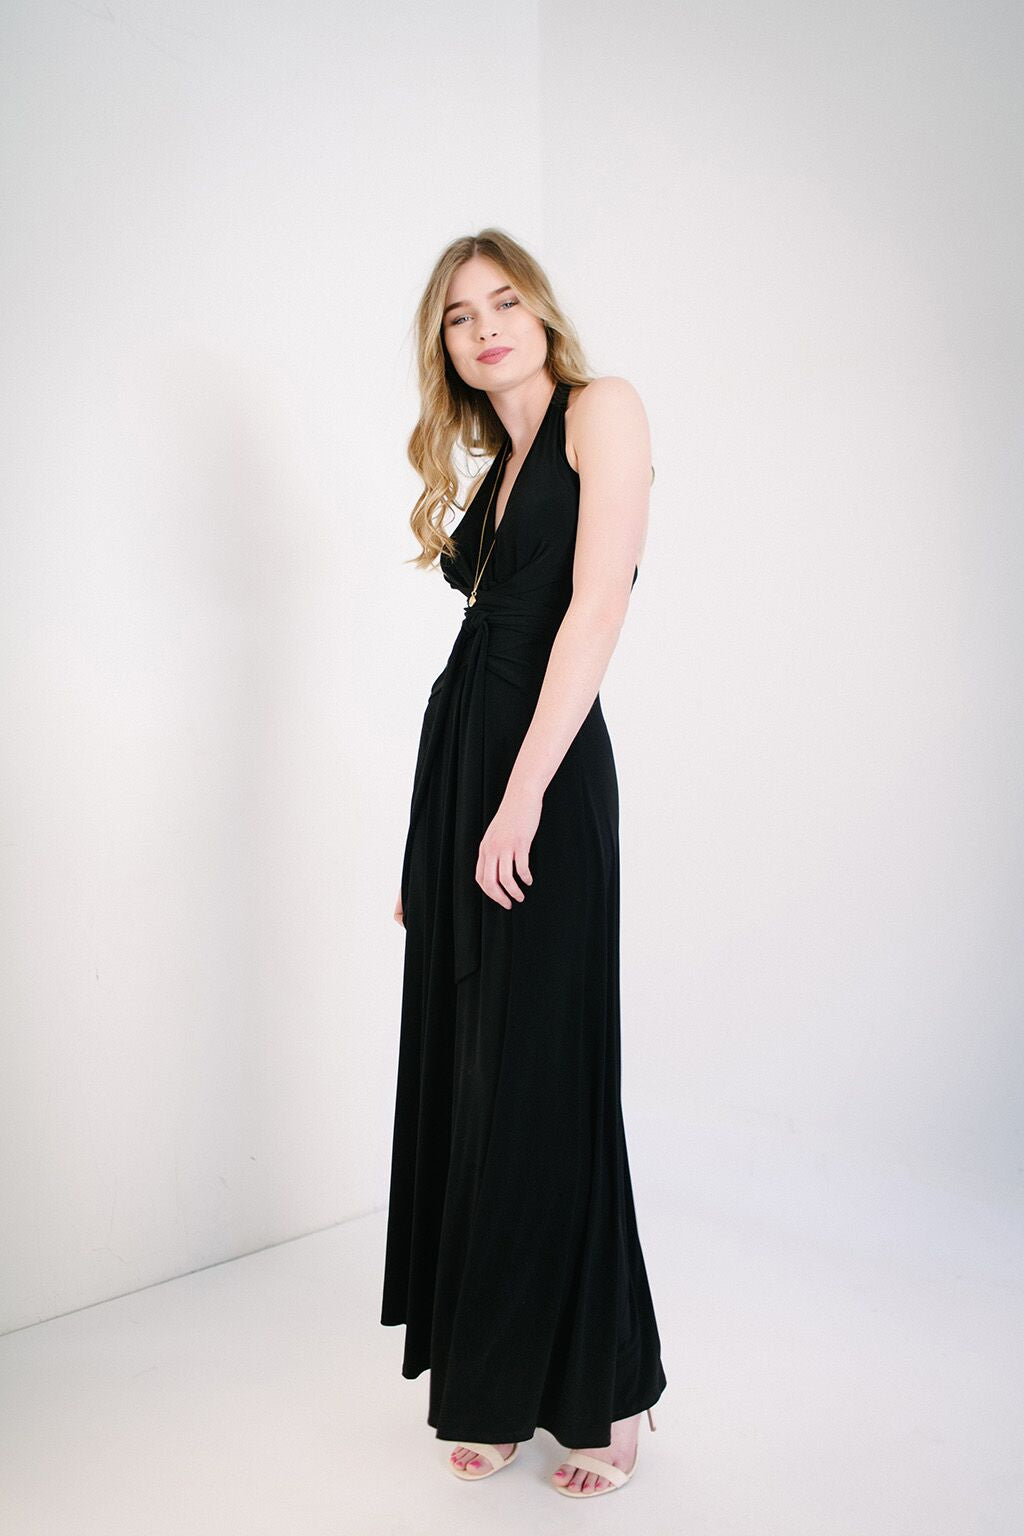 KOKOON Origami Halter Maxi Dress in Black Standing